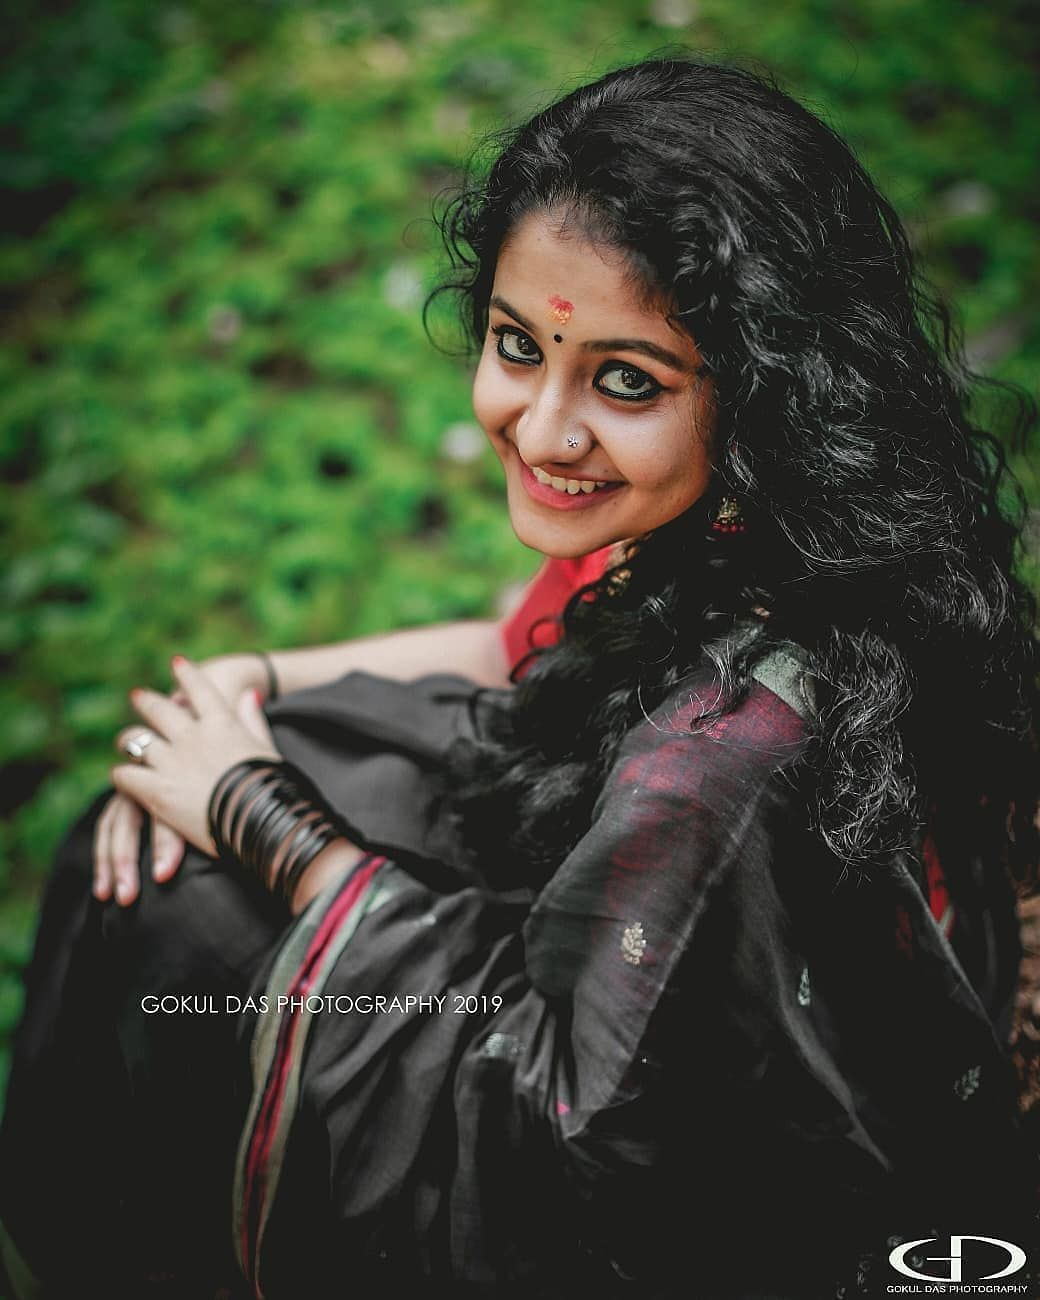 Pin By Telets On Insta Images Beauty Smile Beautiful Girl Image Saree Photoshoot